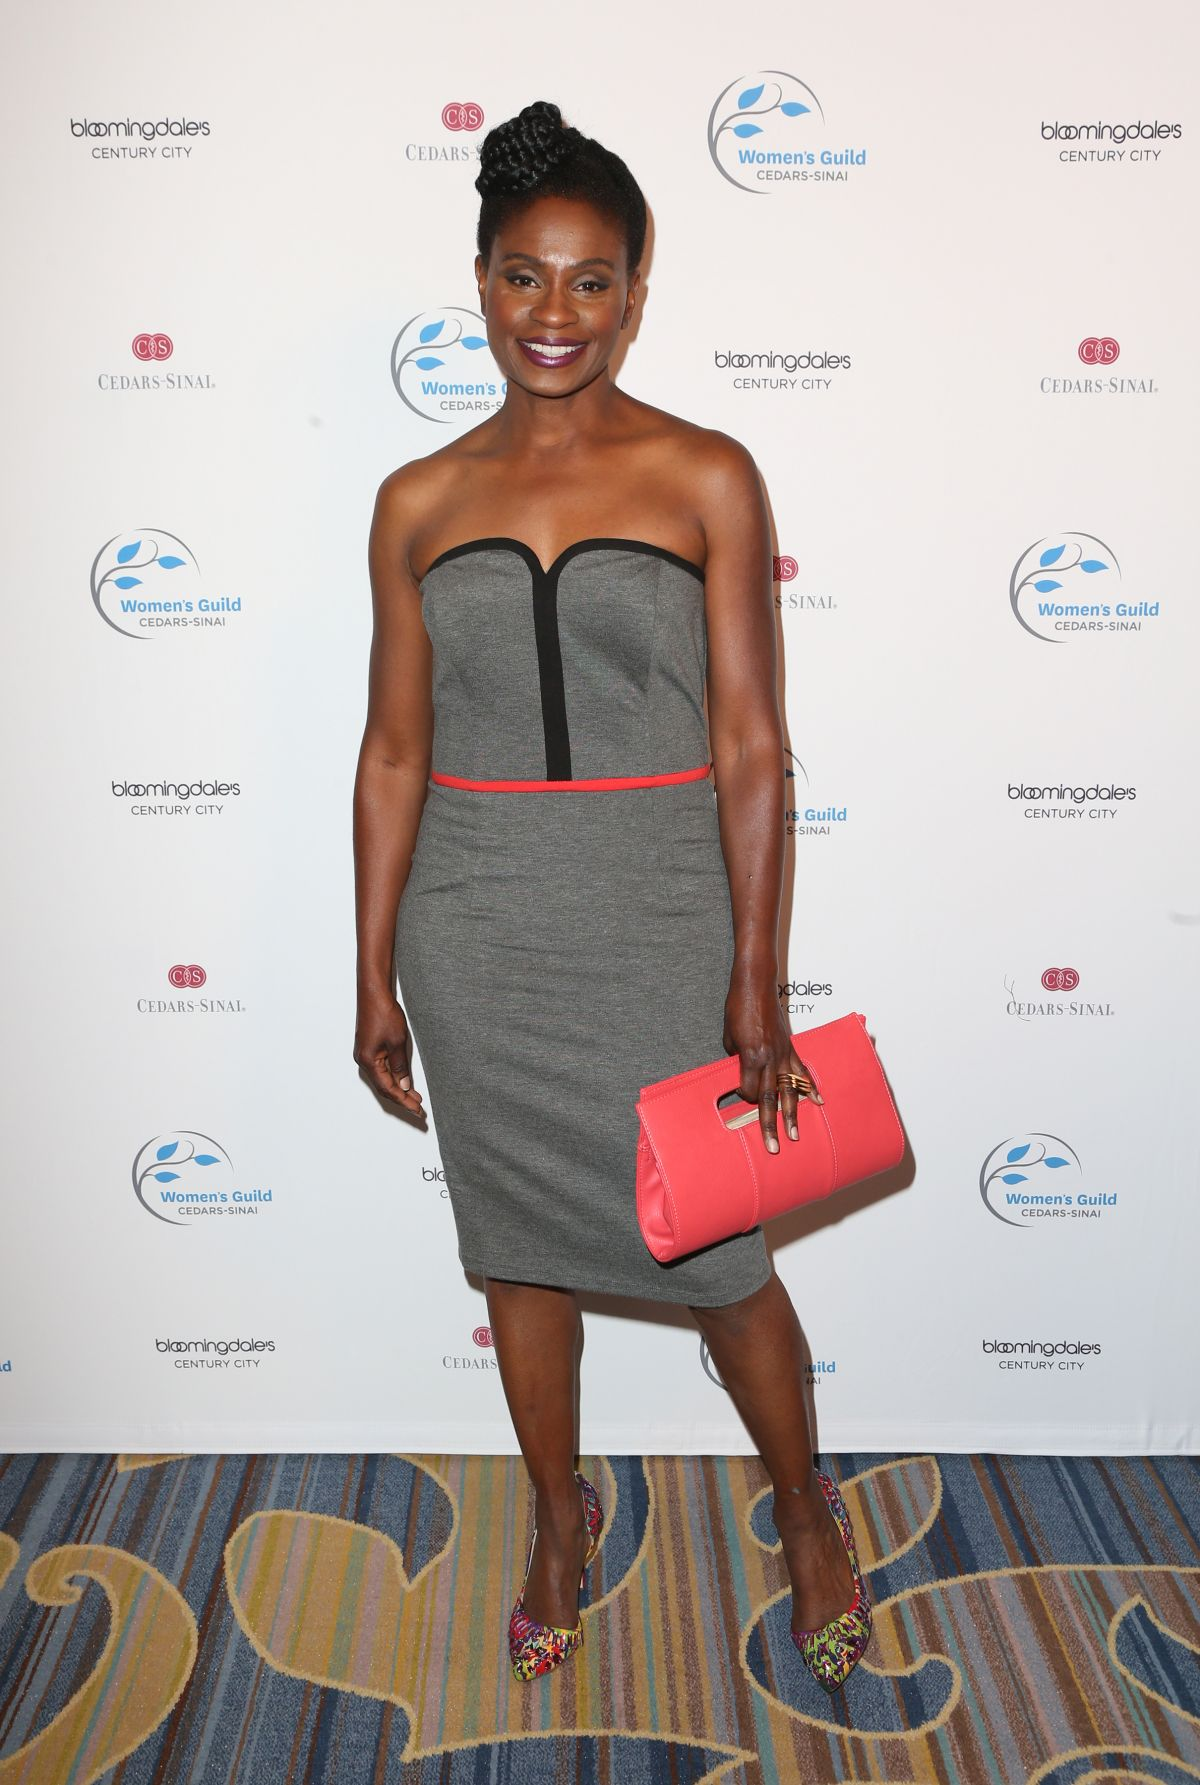 ADINA PORTER at Women's Guild Cedars Sinai Annual Spring Luncheon in Los Angeles 04/20/2017   adina-porter-at-women-s-guild-cedars-sinai-annual-spring-luncheon-in-los-angeles-04-20-2017_7